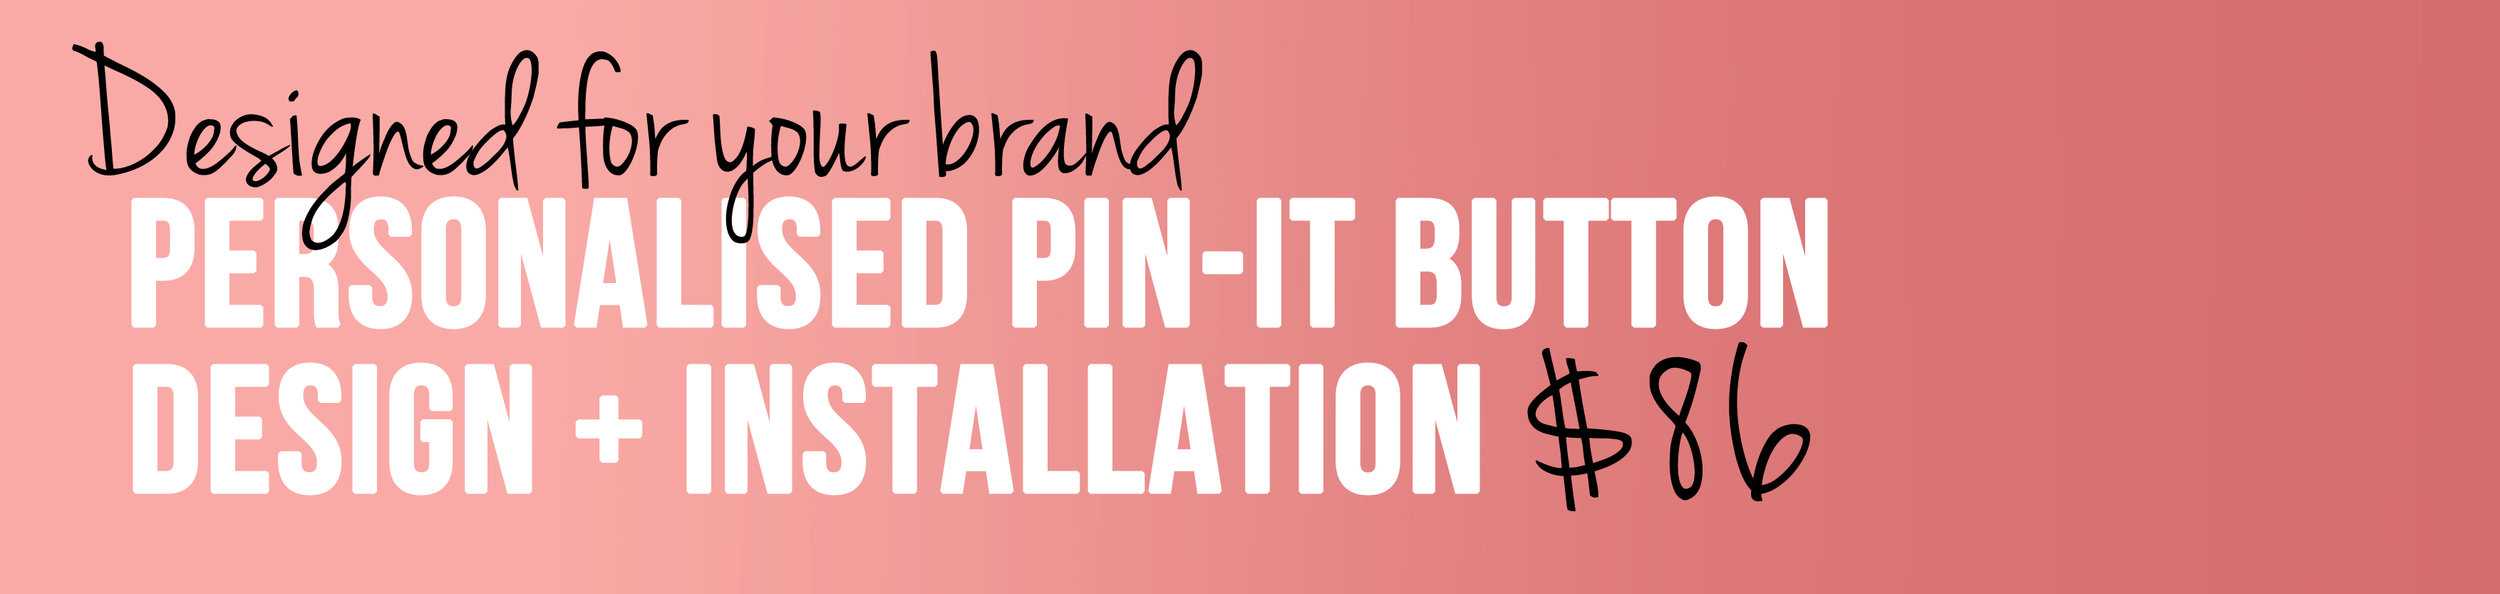 Personalised custom pinterest pin-it button for your brand